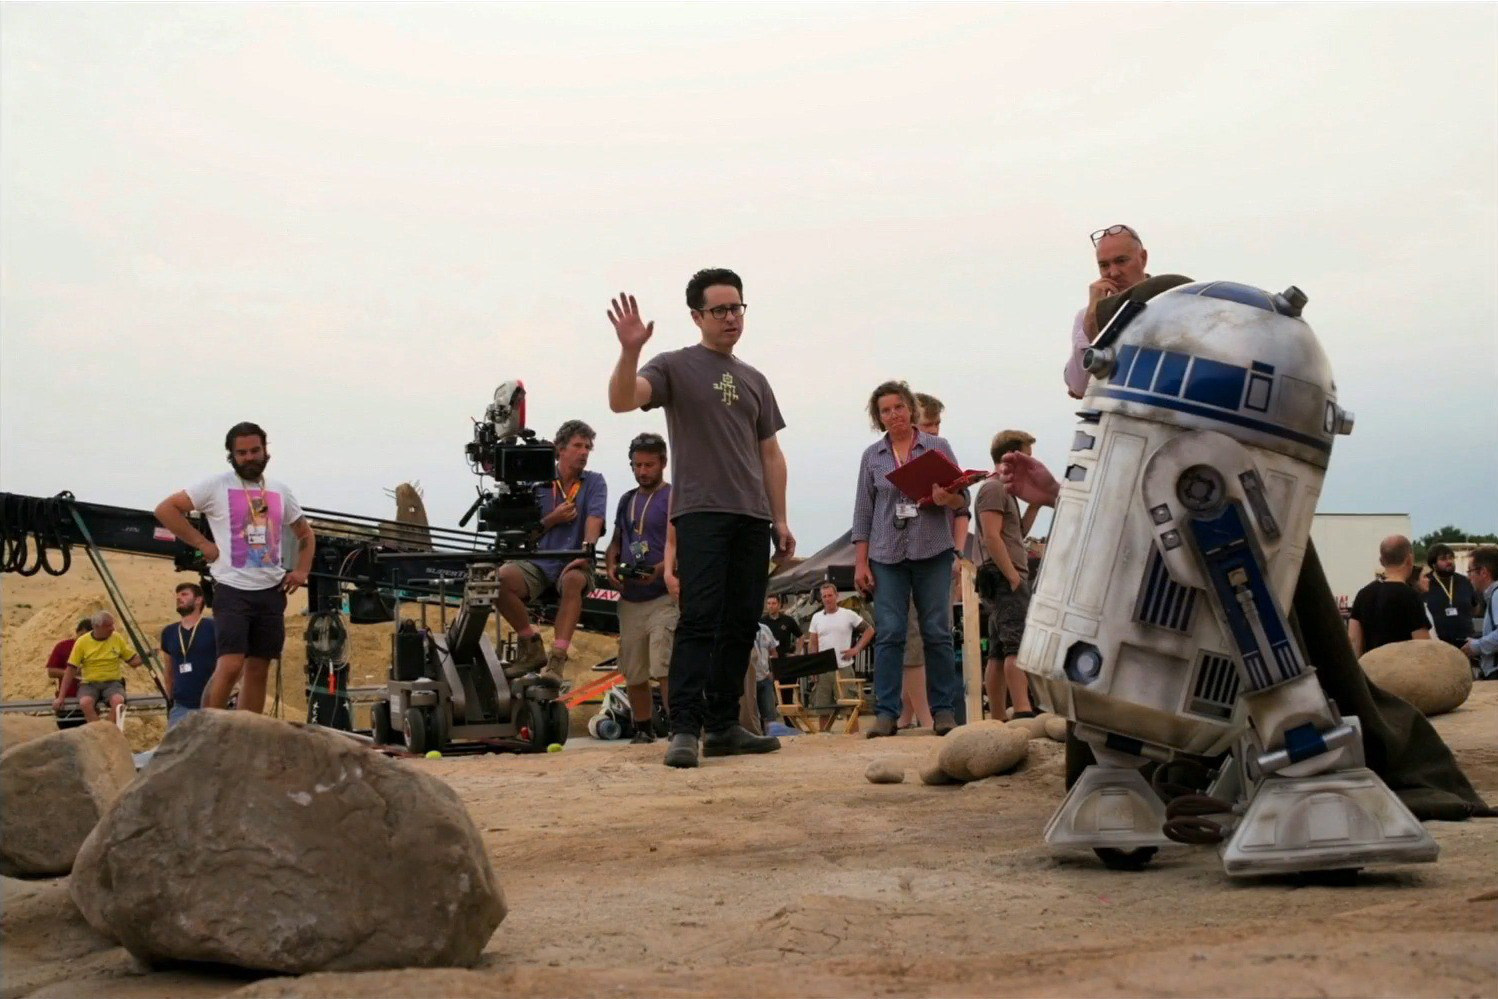 On Location – Star Wars: The Force Awakens (2015) Behind the Scenes